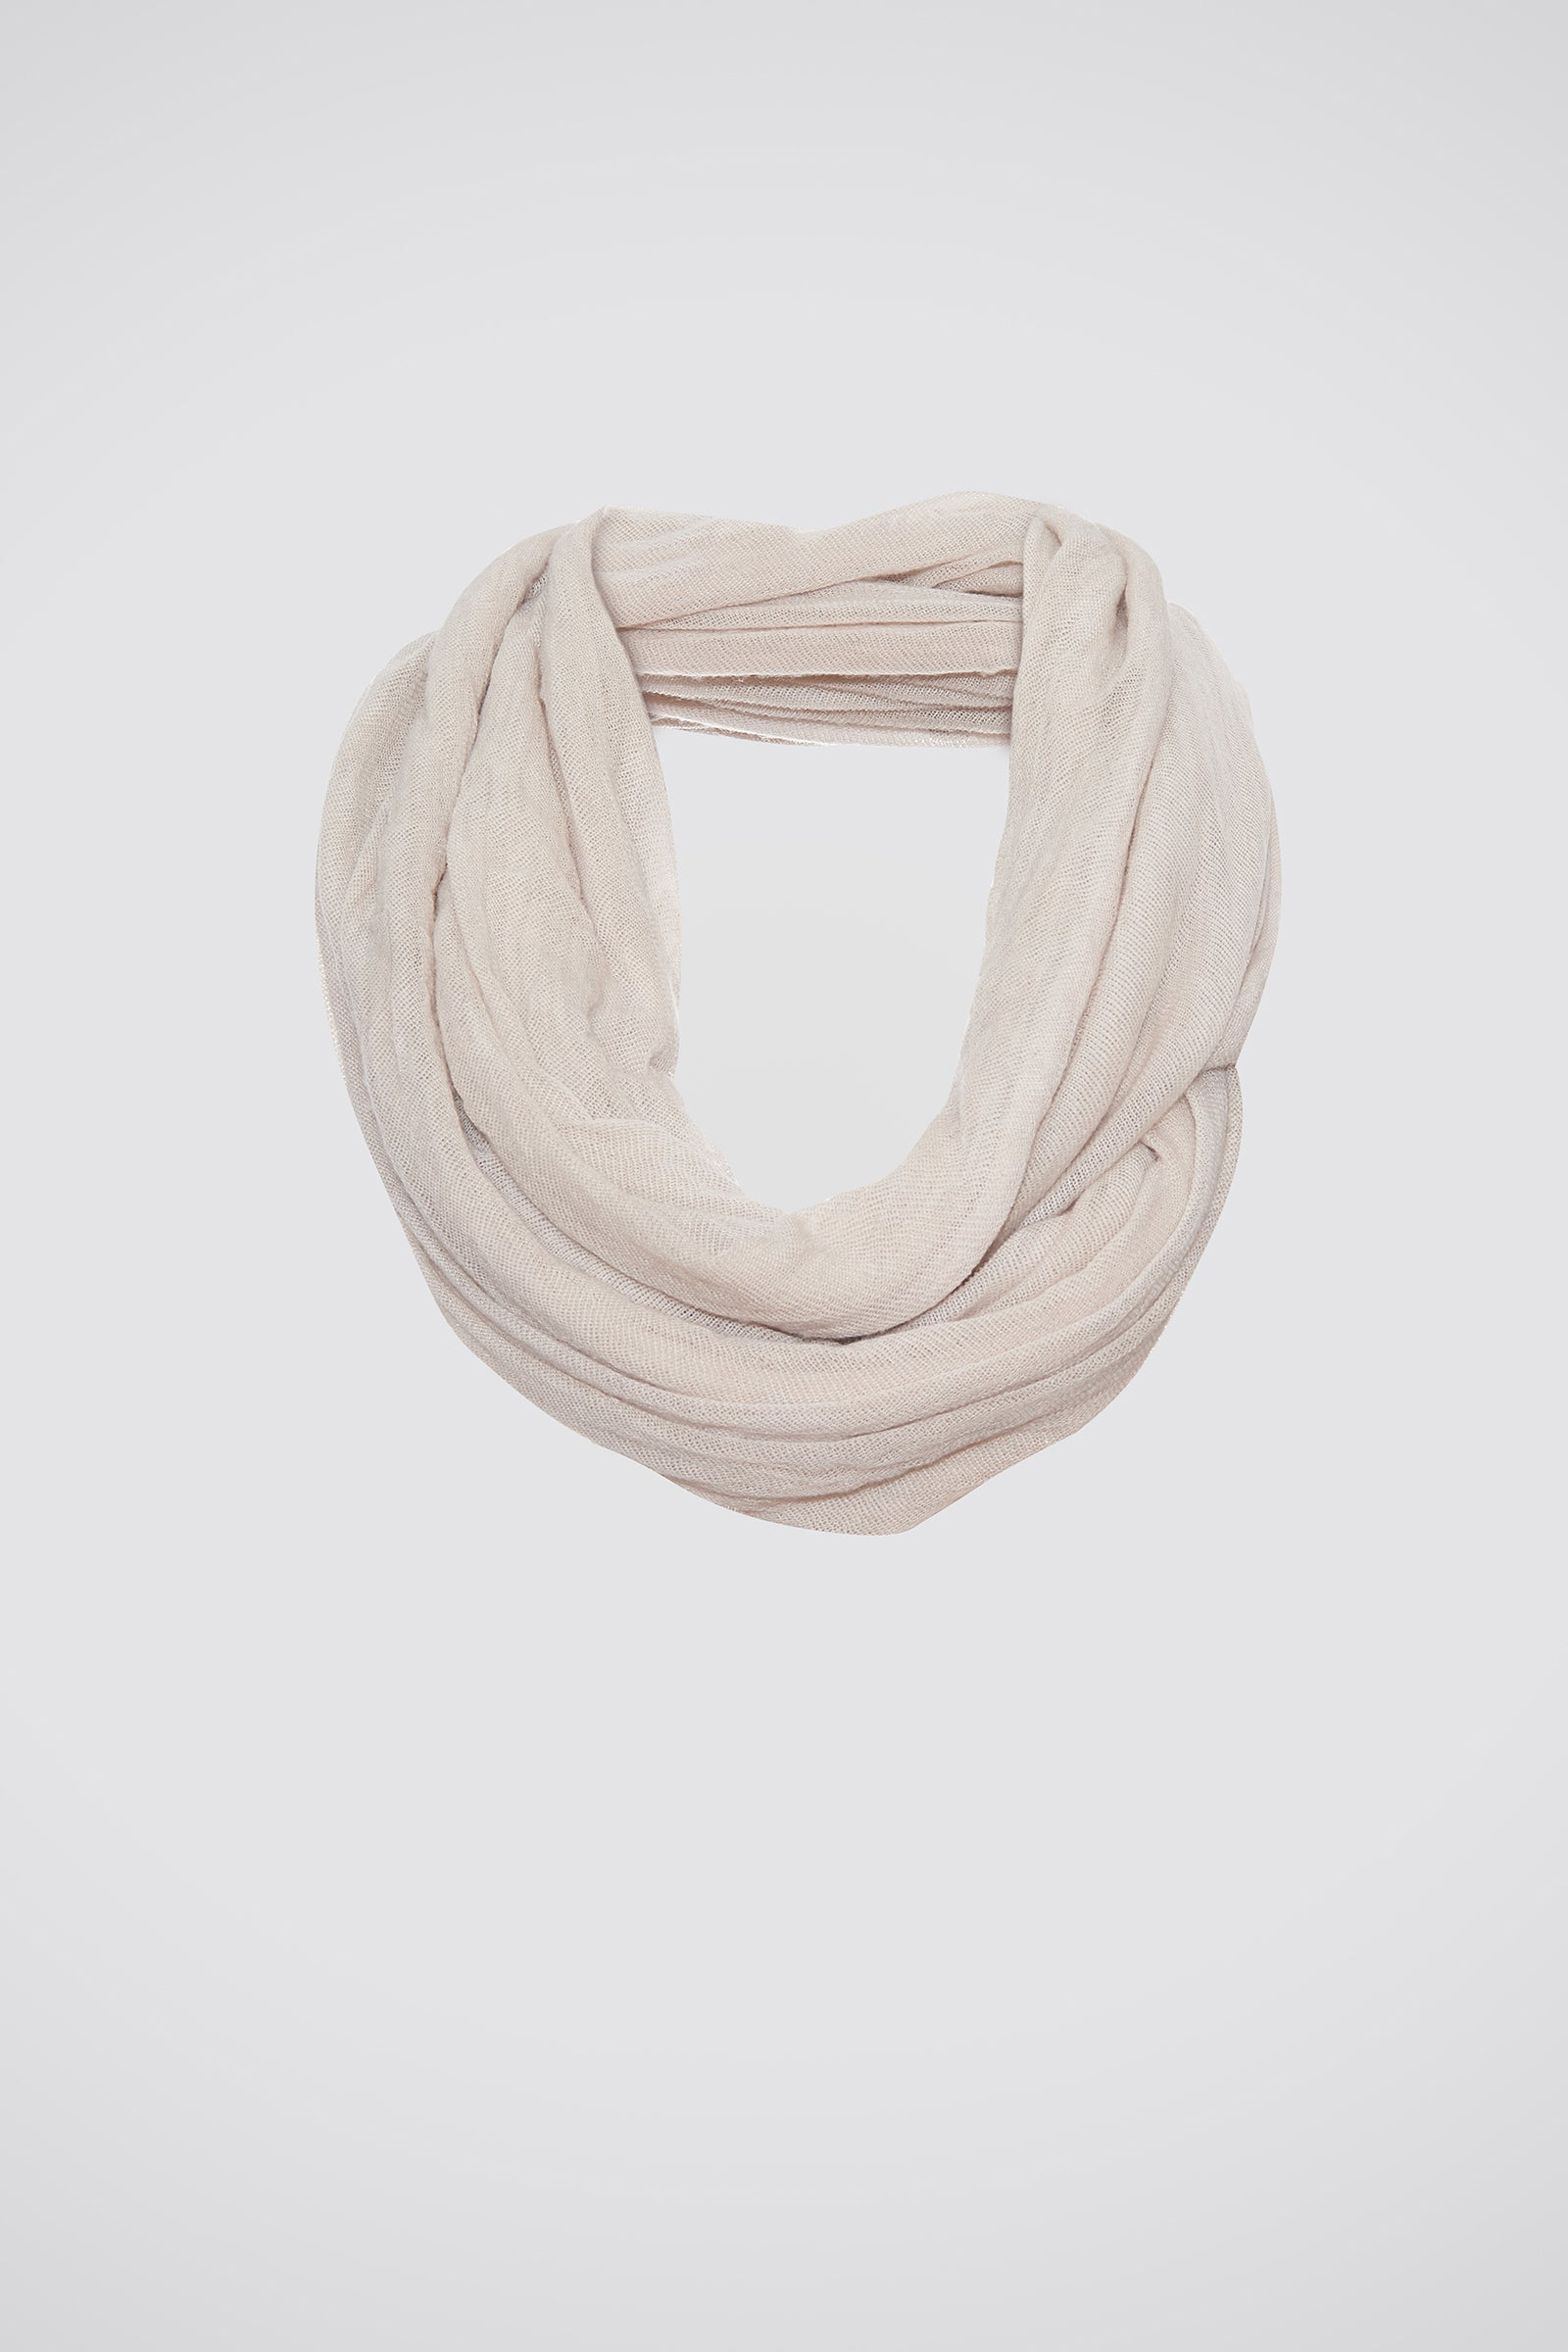 Kal Rieman Infinity Circle Scarf in Cream on Model Front View Tied